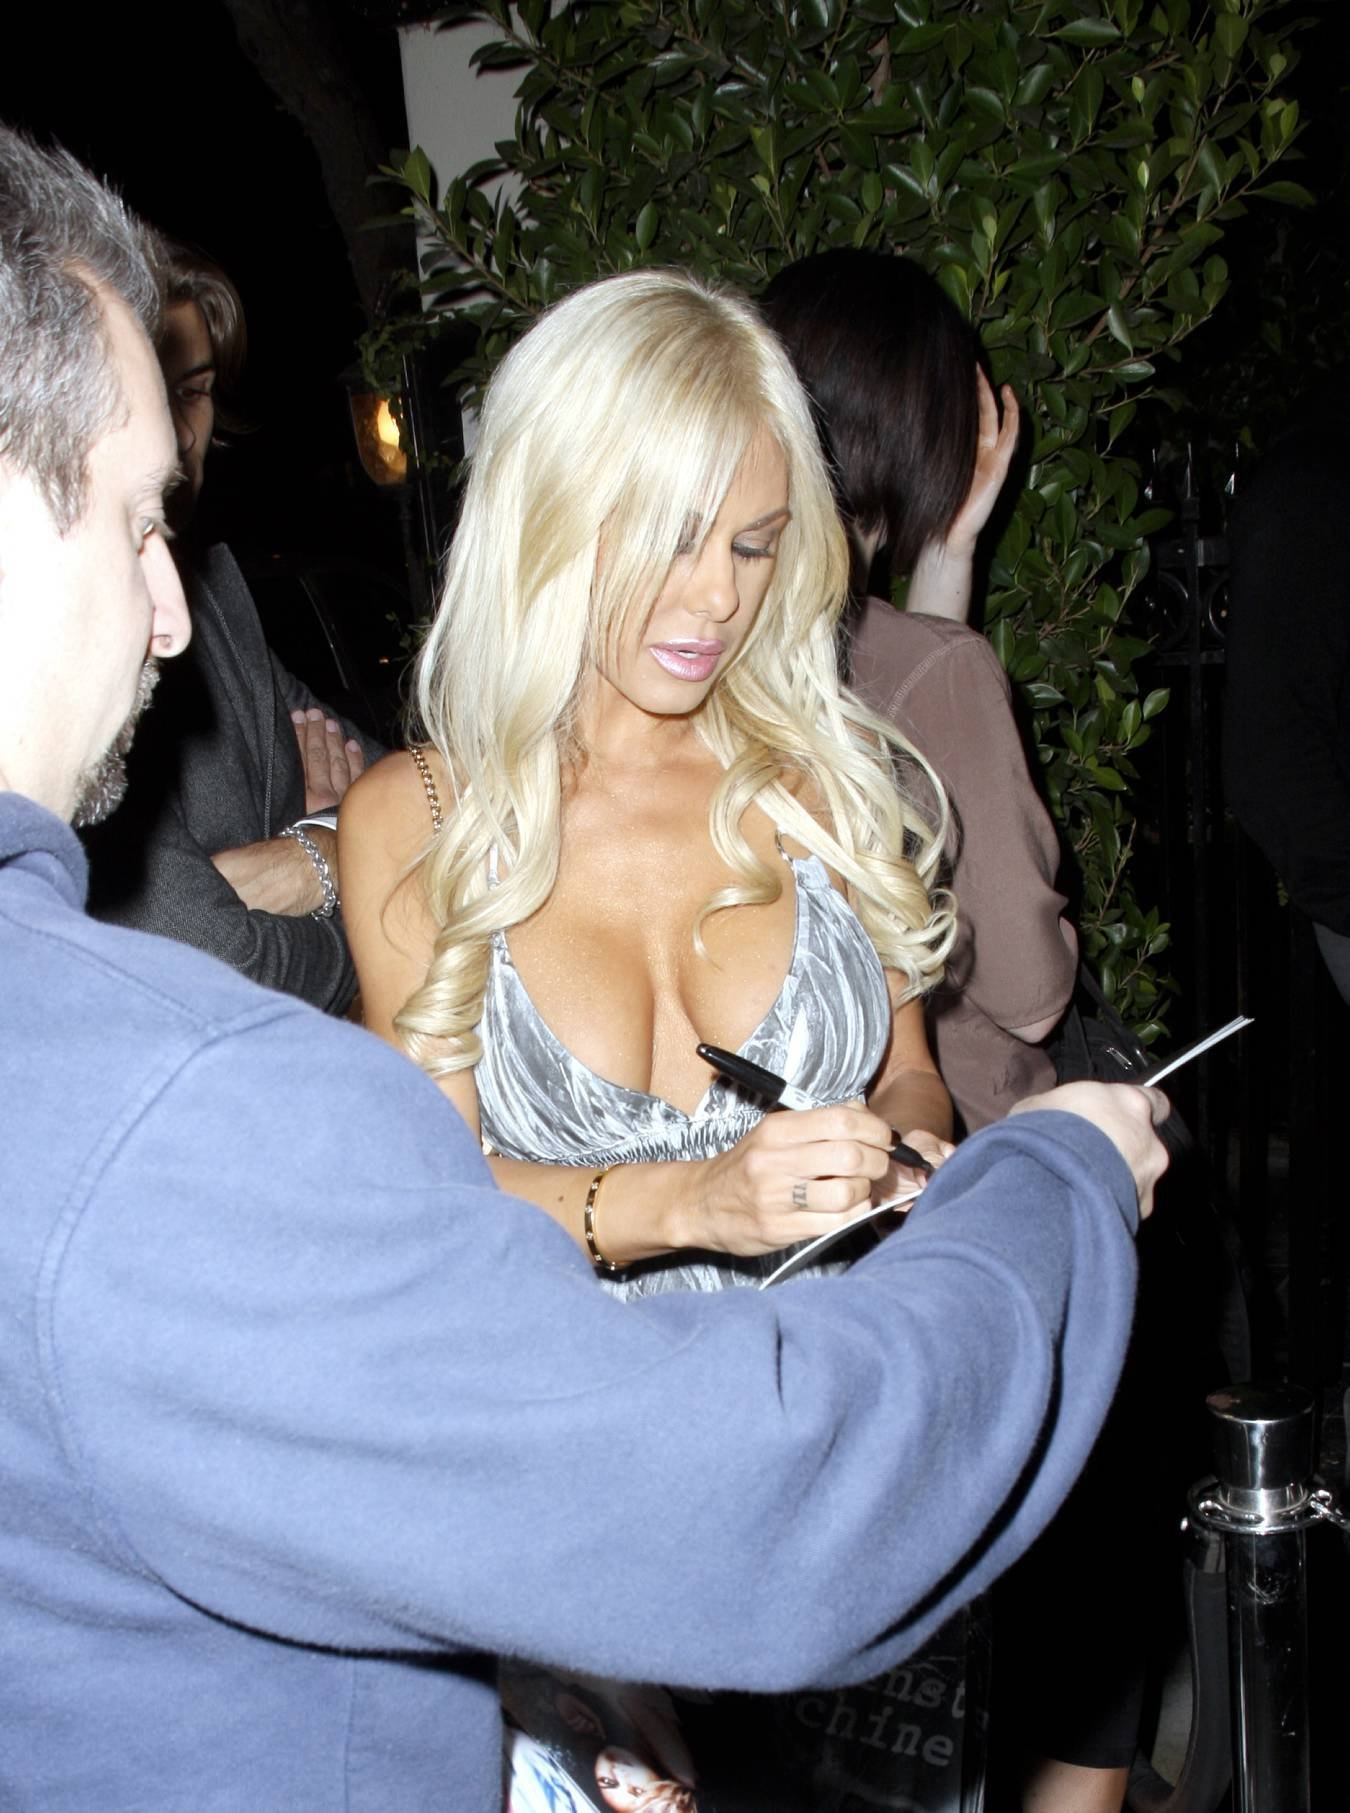 08632_Celebutopia-Shauna_Sand_signs_autographs_at_Crown_Bar_in_Los_Angeles-05_122_1060lo.jpg